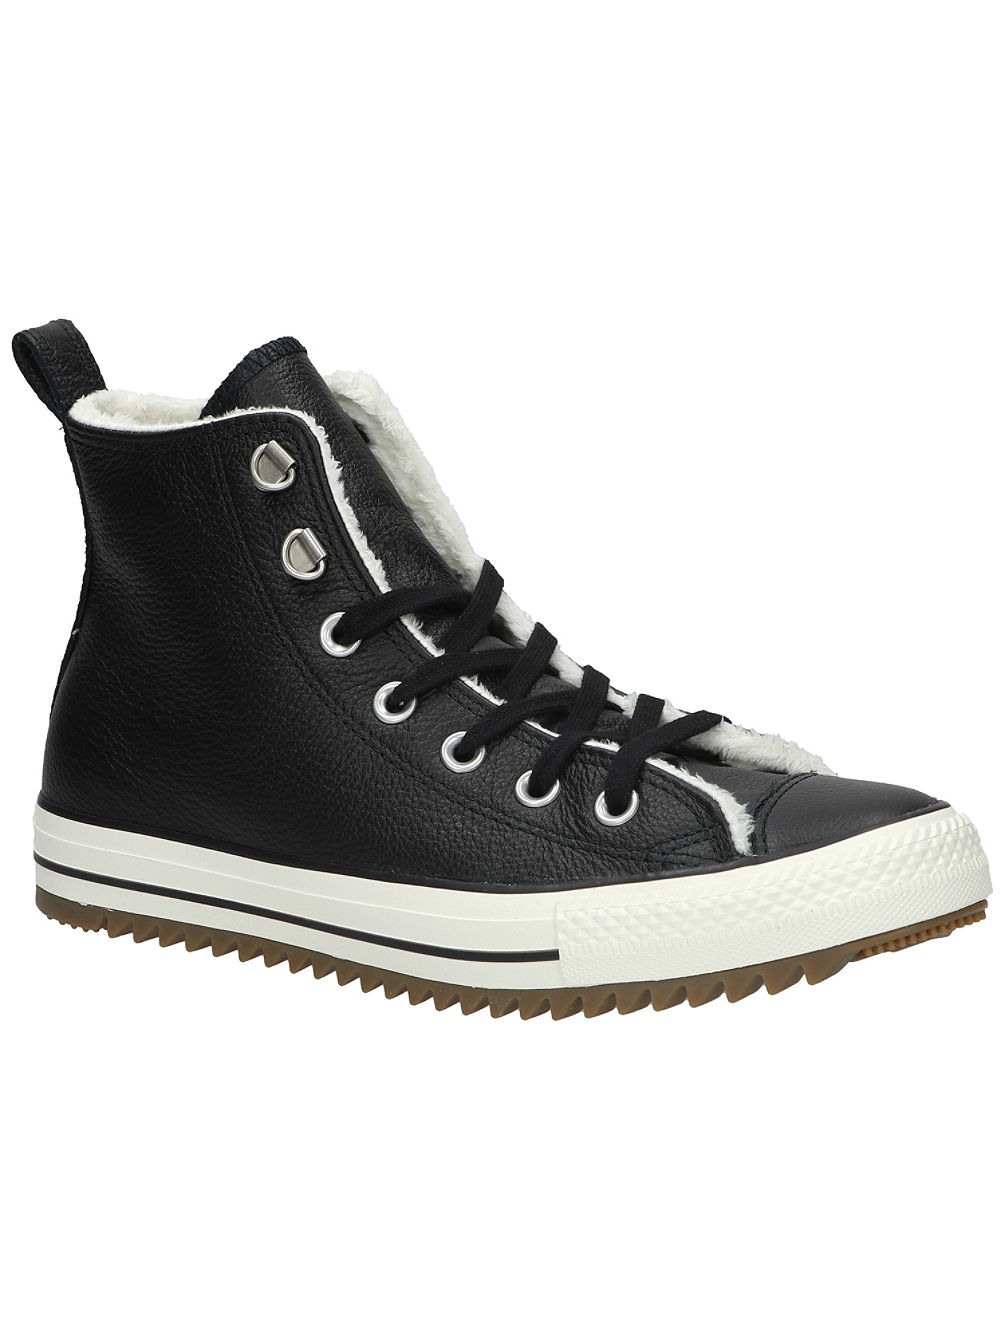 ff119d690d258d Buy Converse Chuck Taylor All Star Hiker Shoes online at blue-tomato.com